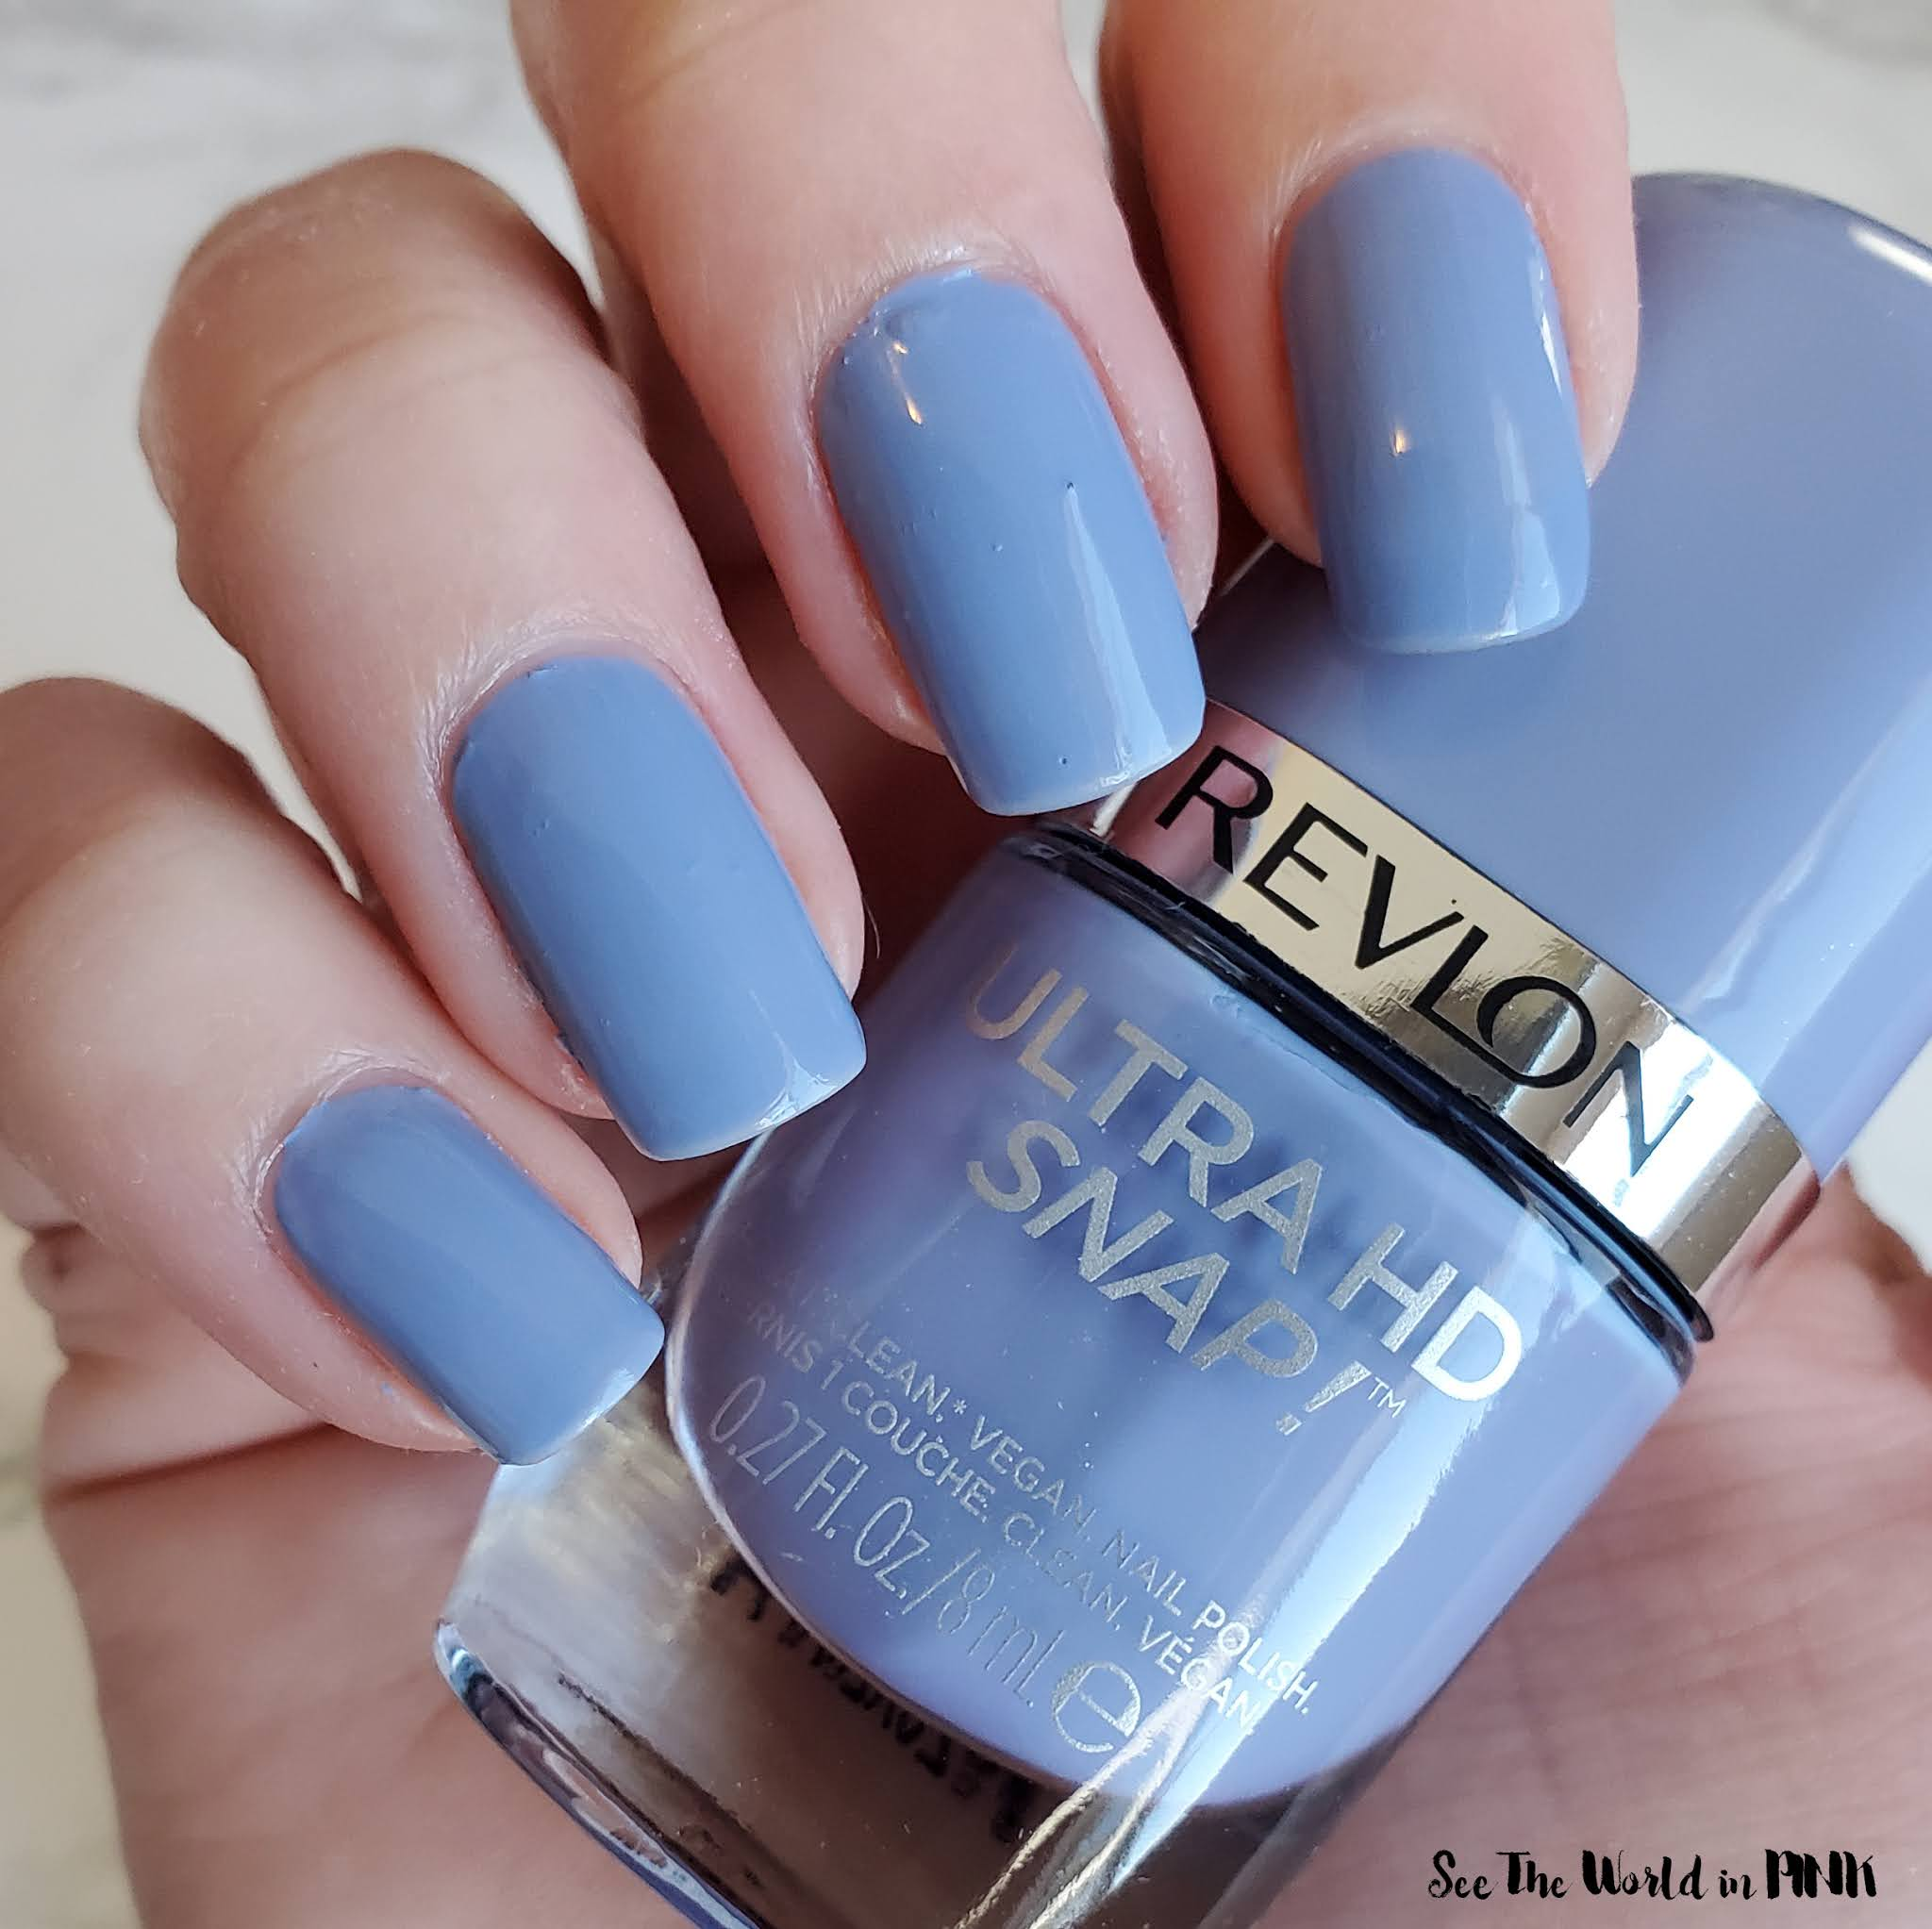 Manicure Monday - Easter Dinosaur Eggs Nails & Revlon Ultra HD Snap polish!